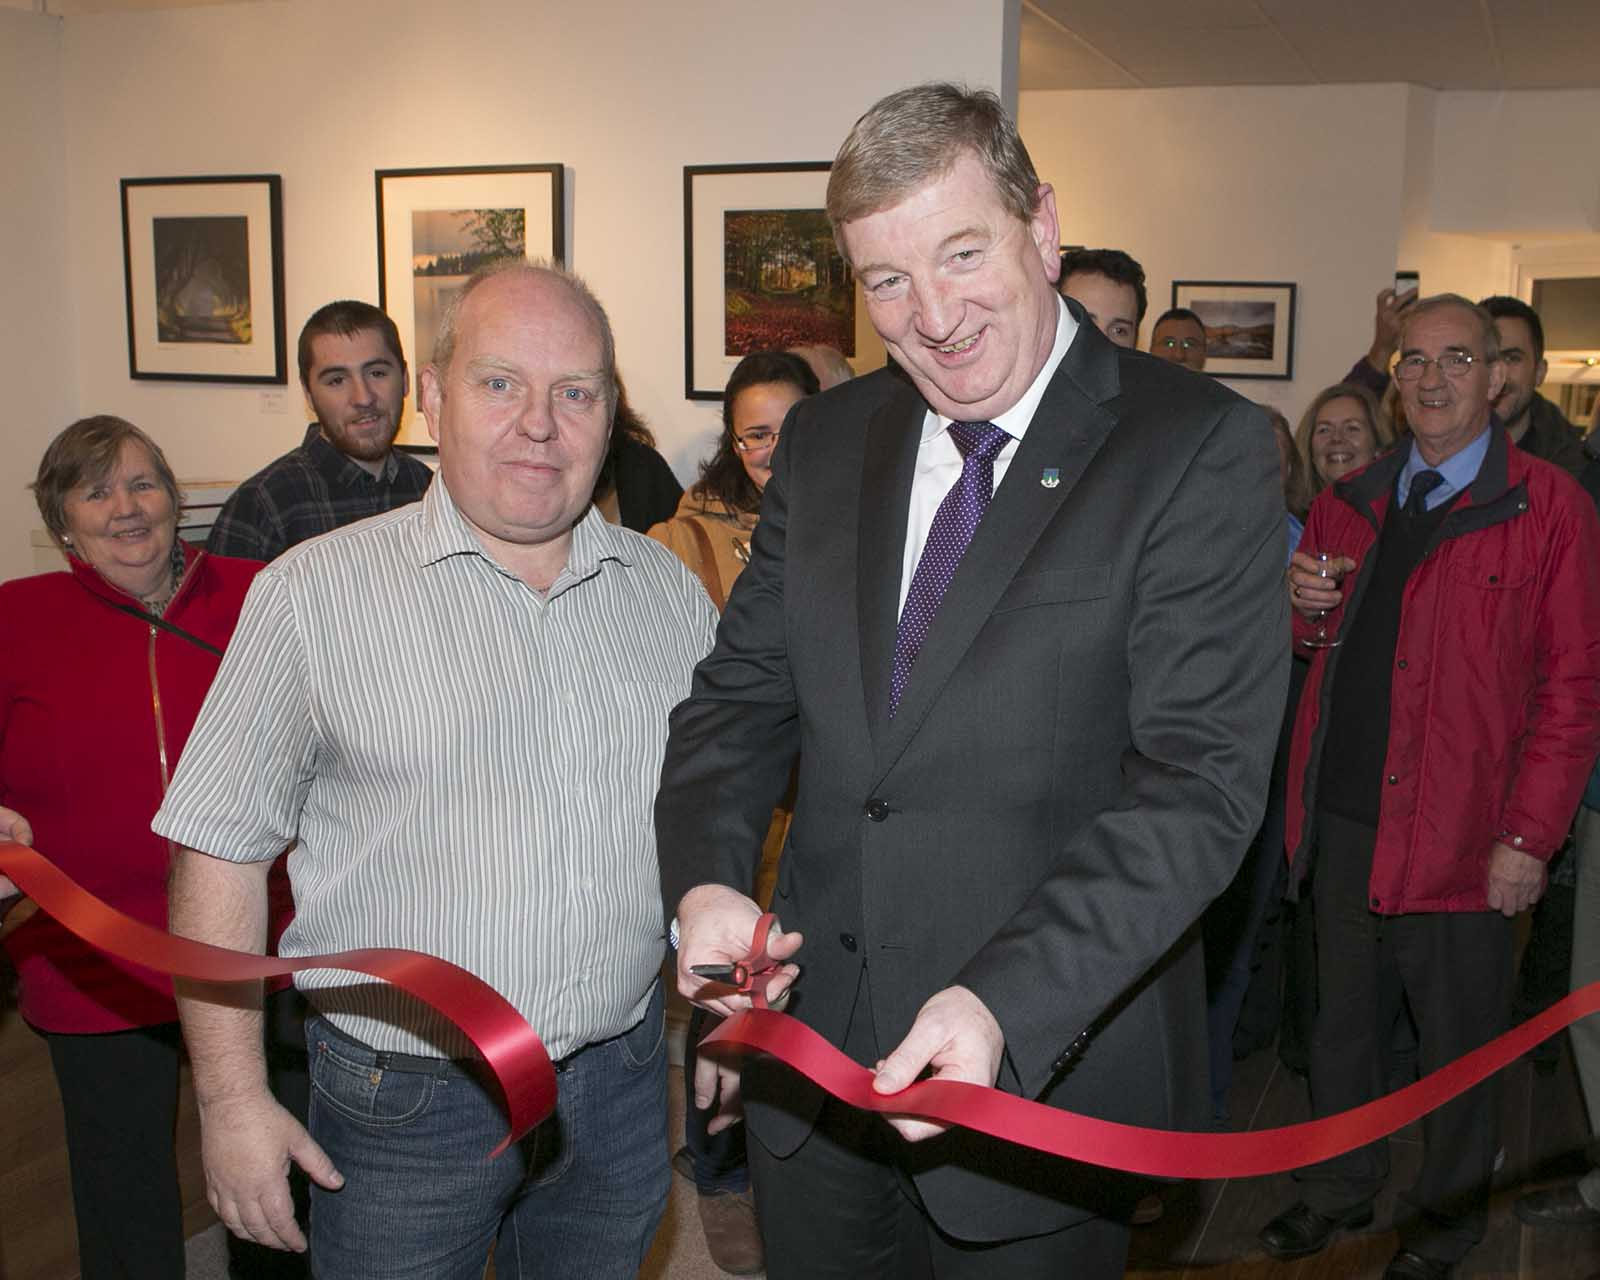 Patrick Casey officially opens the Fran Byrne Gallery in Roundwood